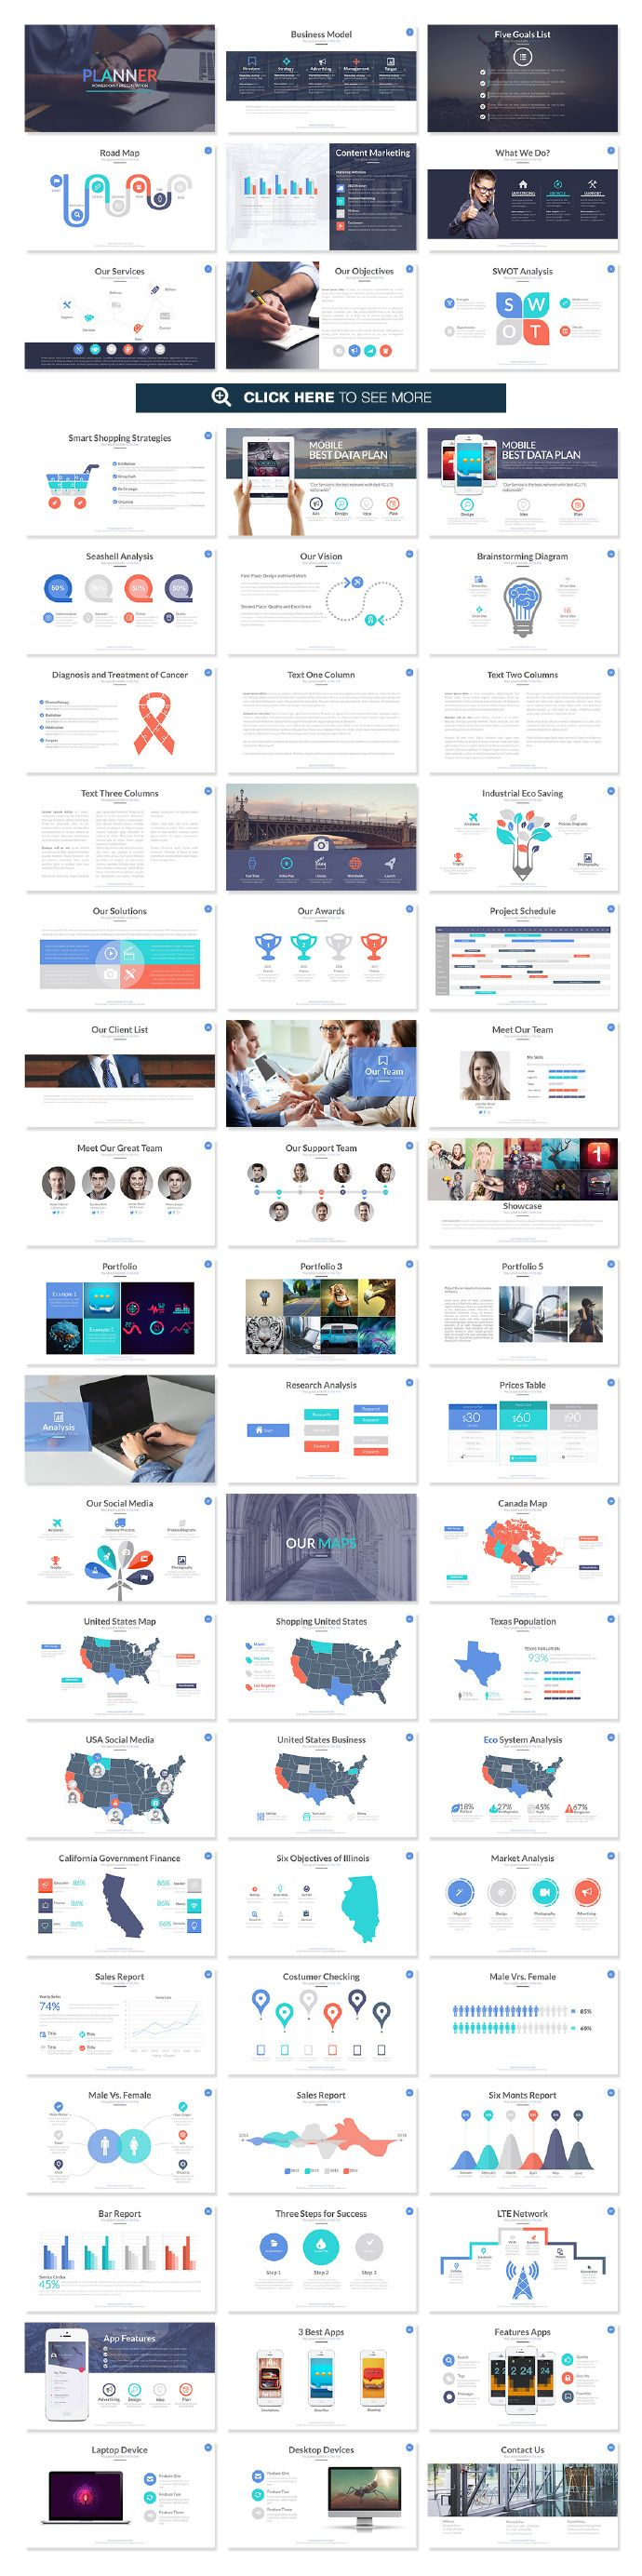 115 best presentation e-learning images on pinterest | ppt, Presentation templates